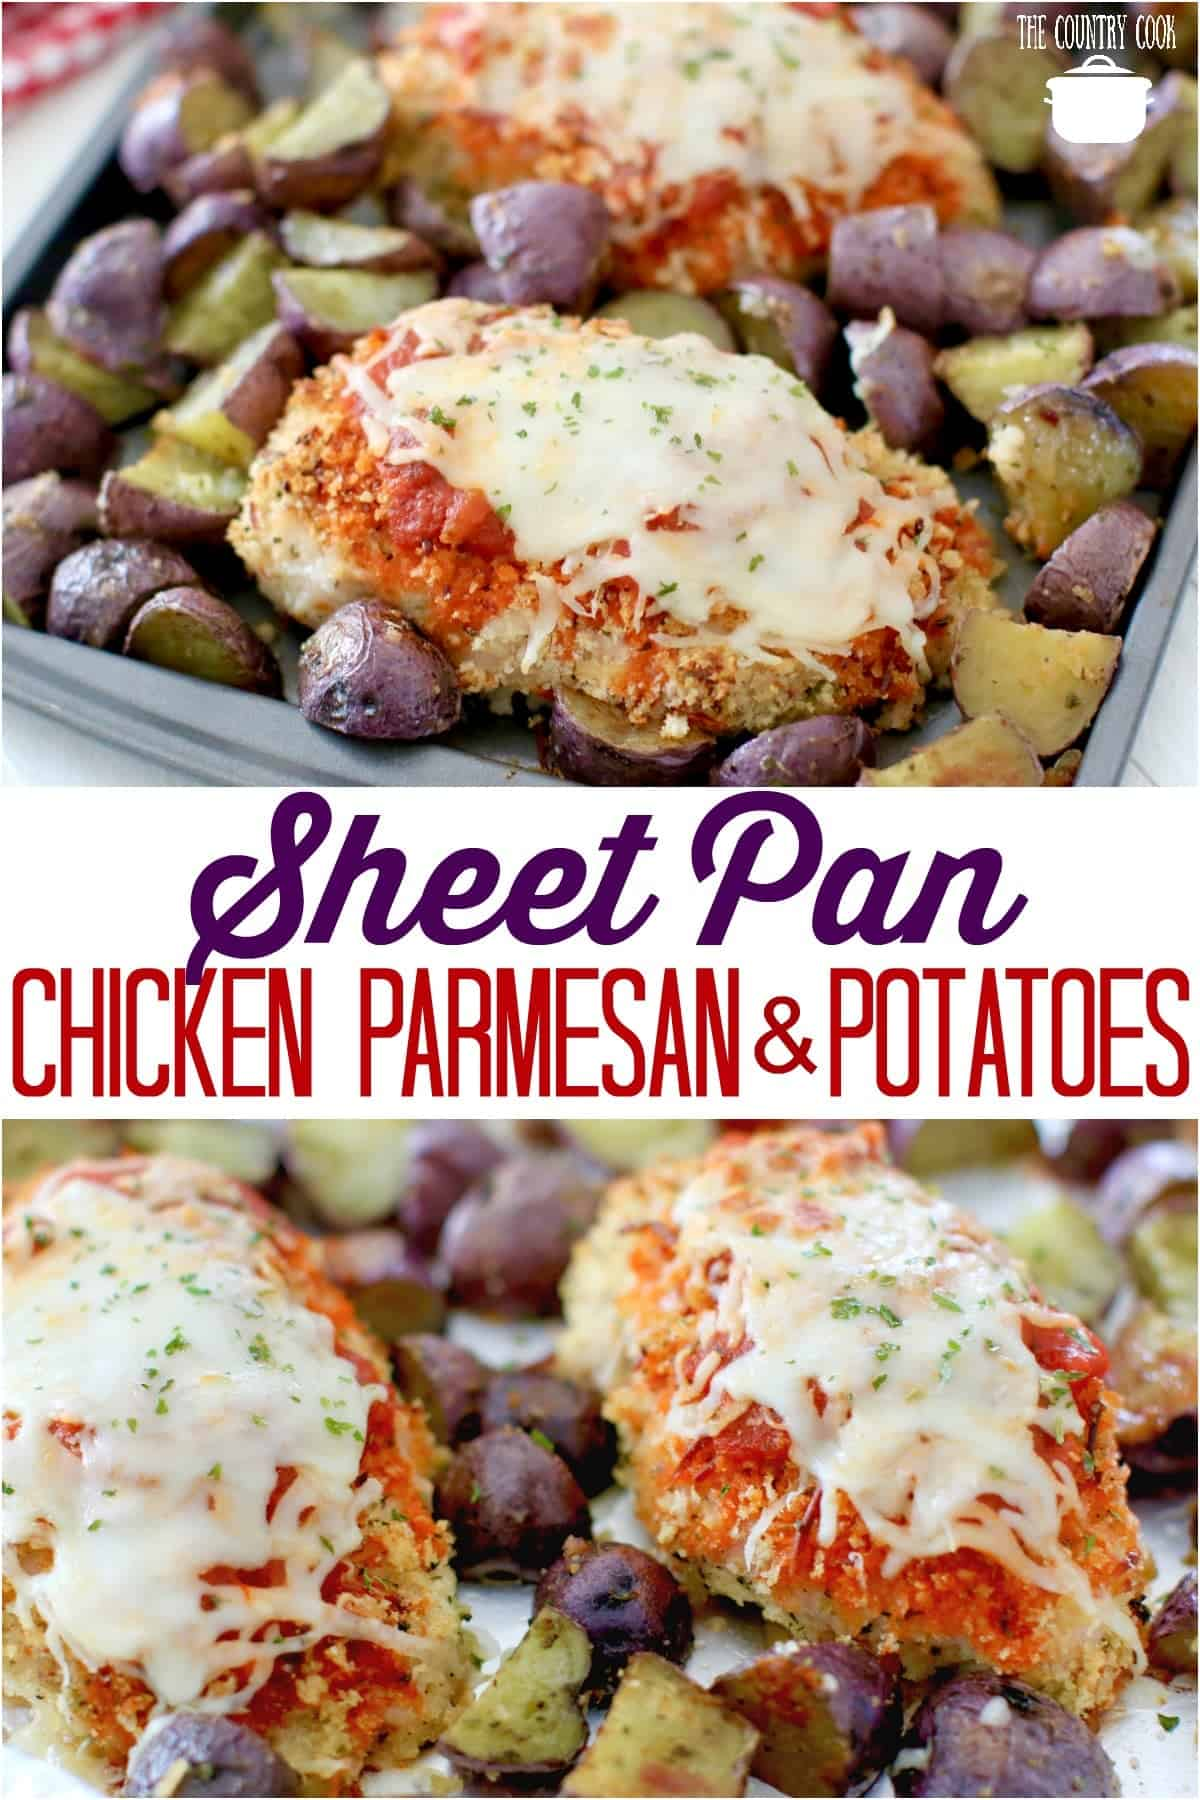 Sheet Pan Baked Chicken Parmesan with Roasted Italian Potatoes recipe from The Country Cook #sheetpan #dinners #recipes #ideas #dinner #chicken #chickenbreast #potatoes #roasted #easy